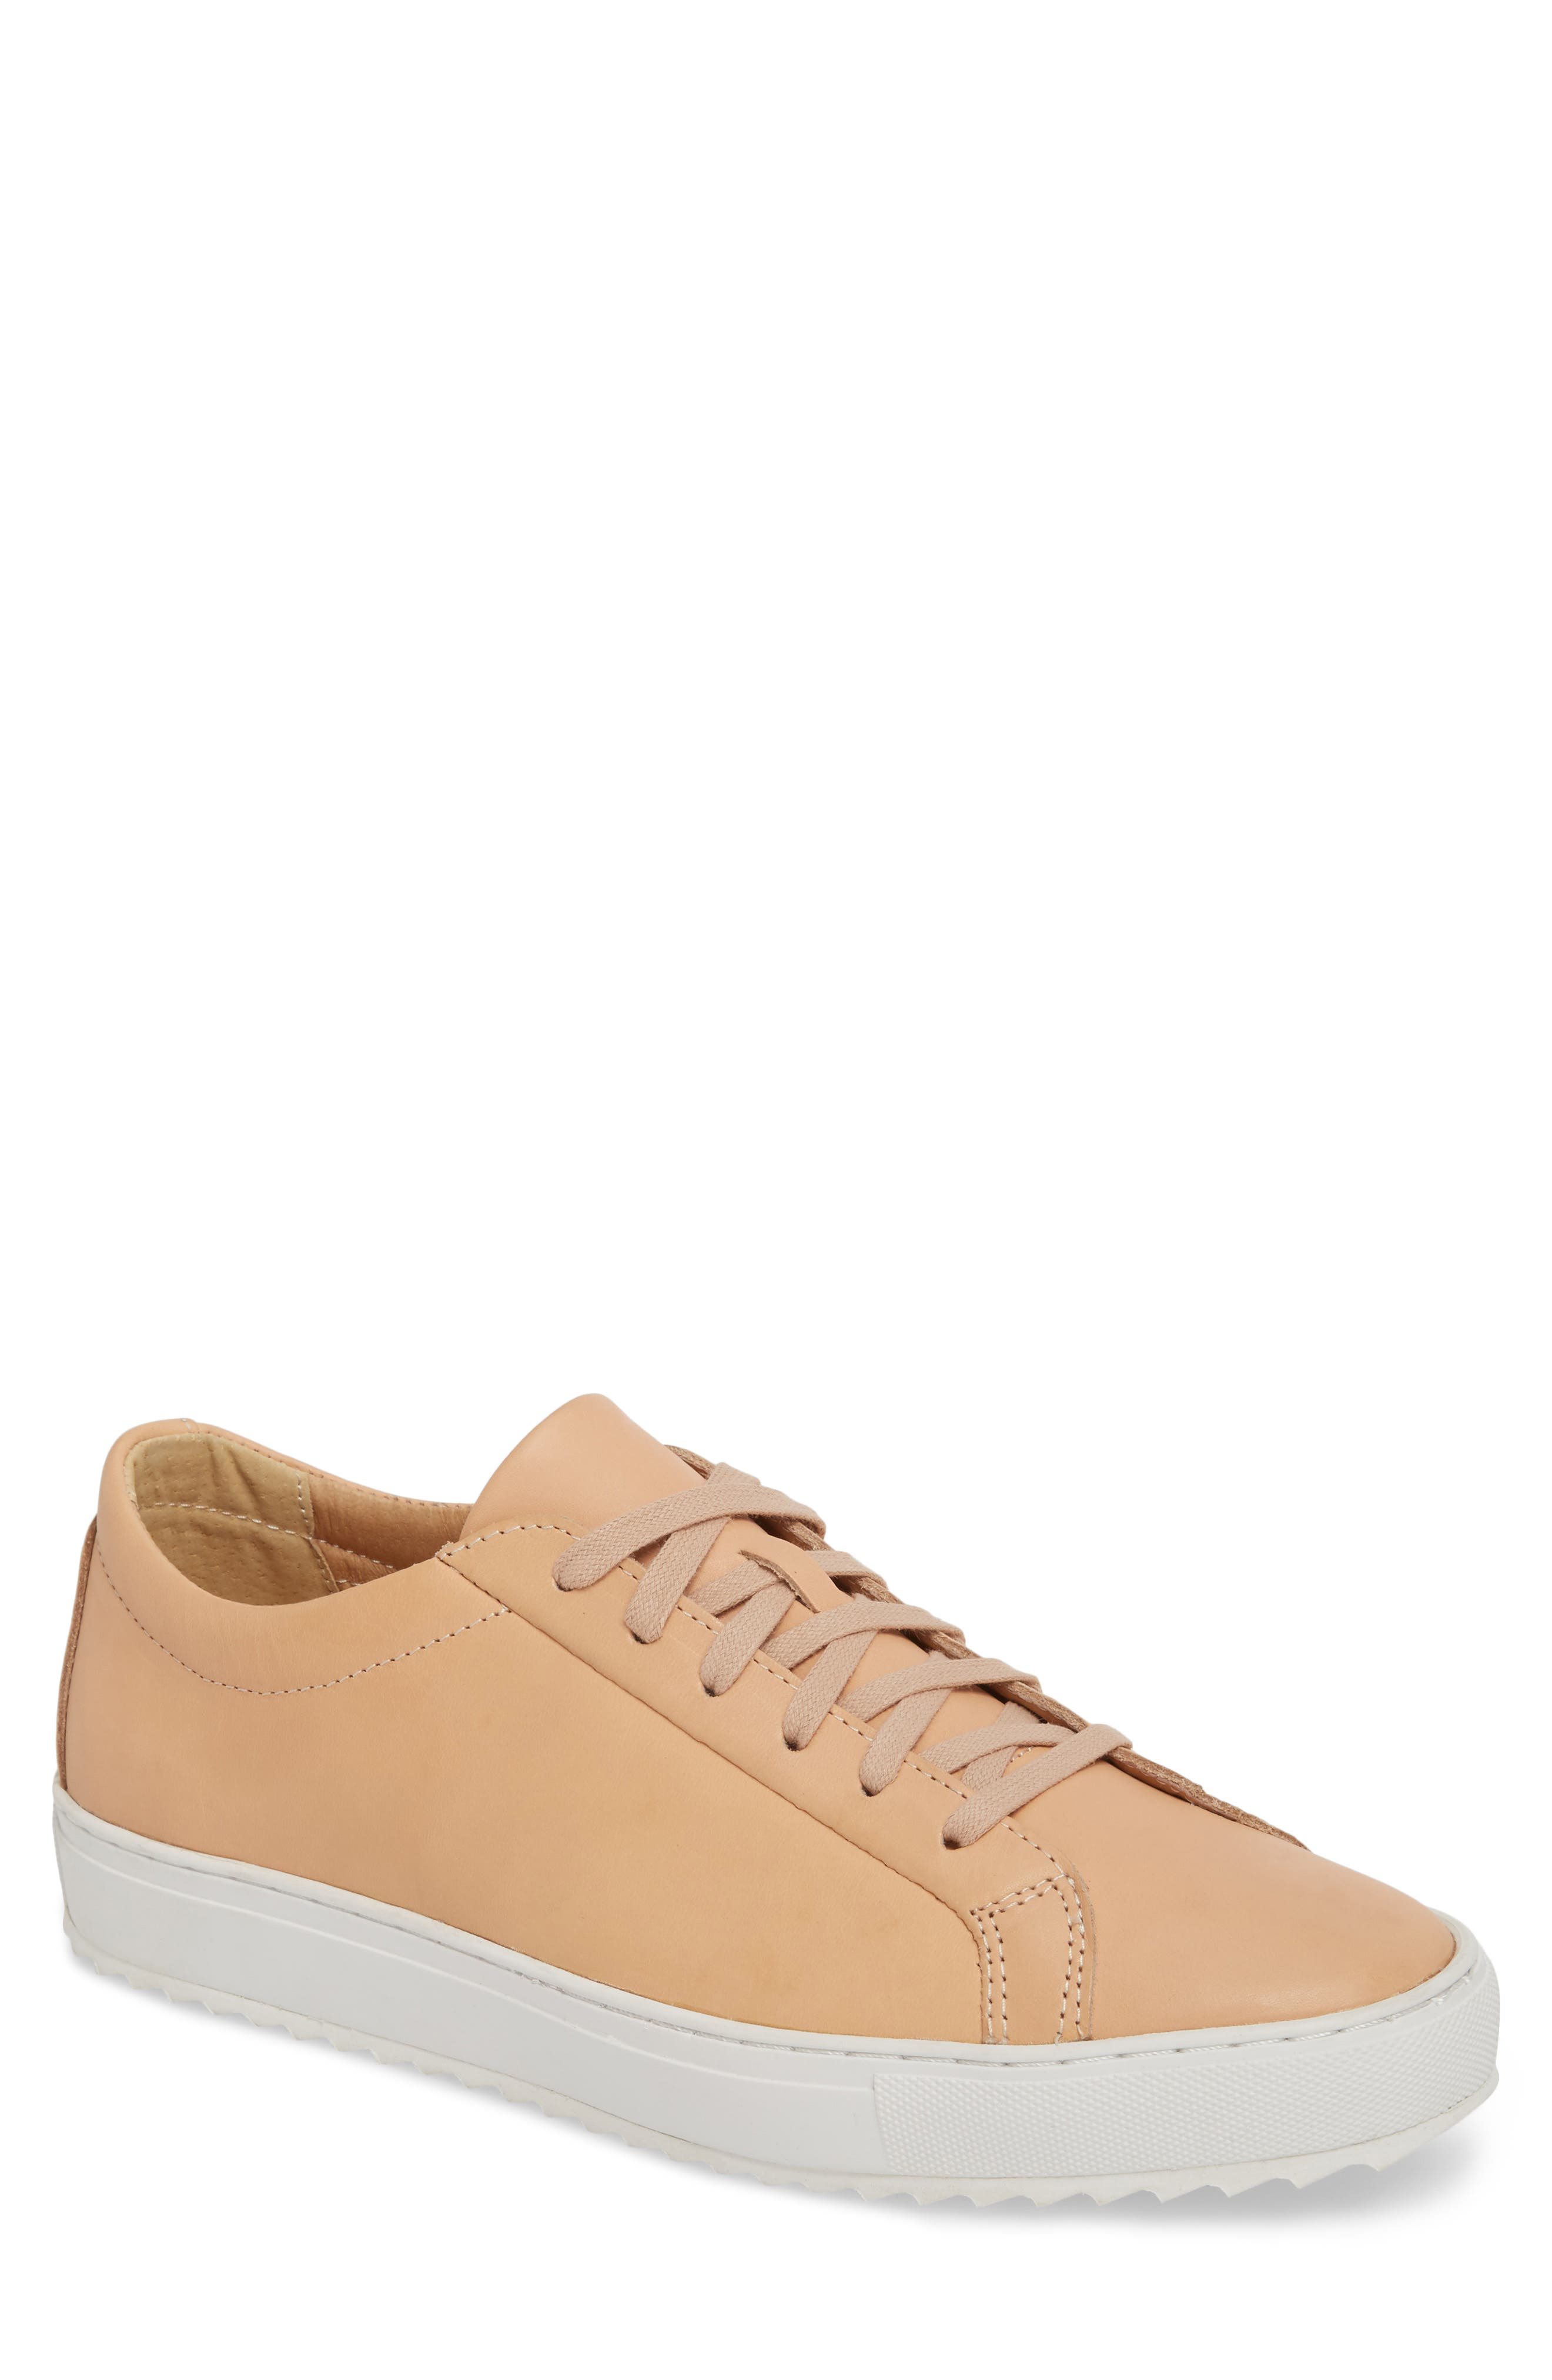 Kennedy Lugged Sneaker,                             Main thumbnail 1, color,                             Natural Leather